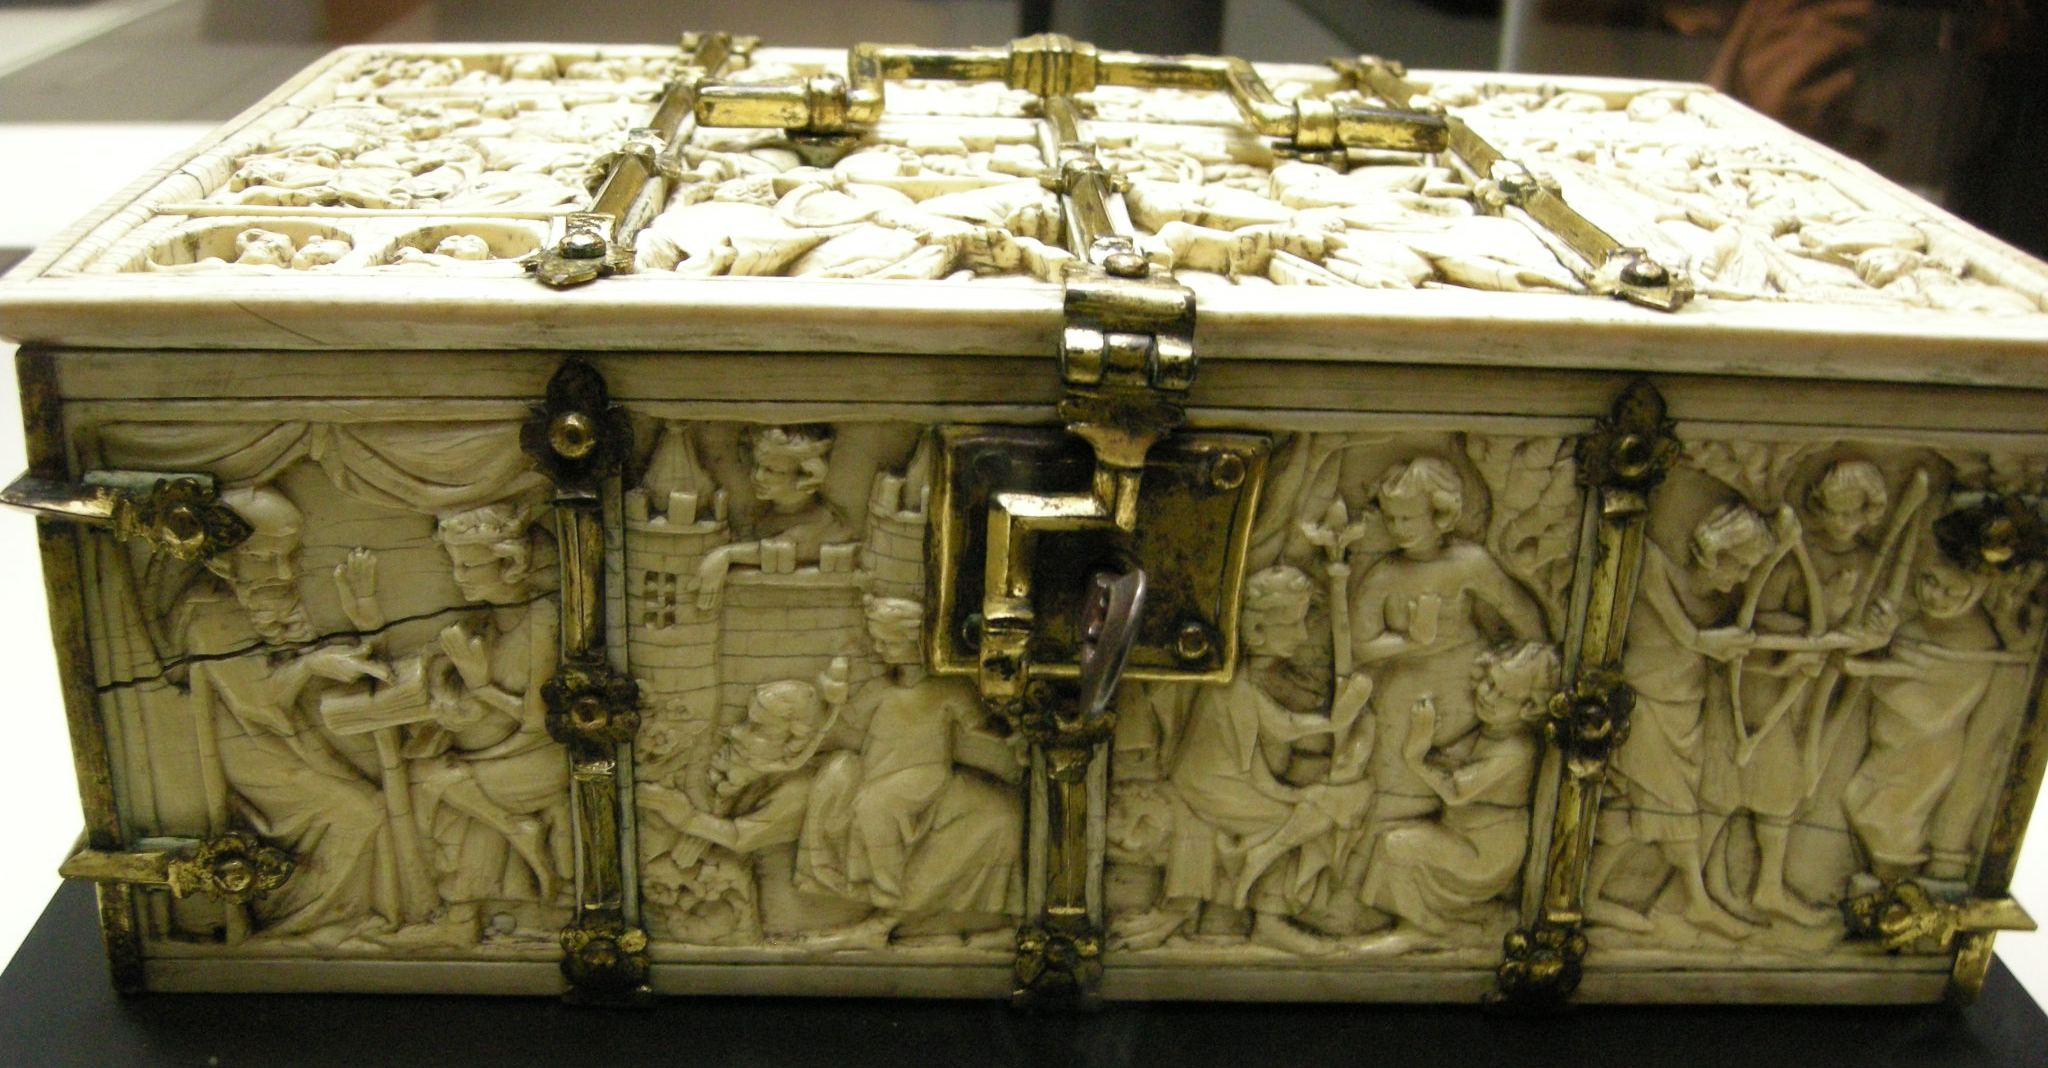 Mnma C Casket With Assoulkt To The Castle Of Love And Other Romance Scenes C Paris C Ivory